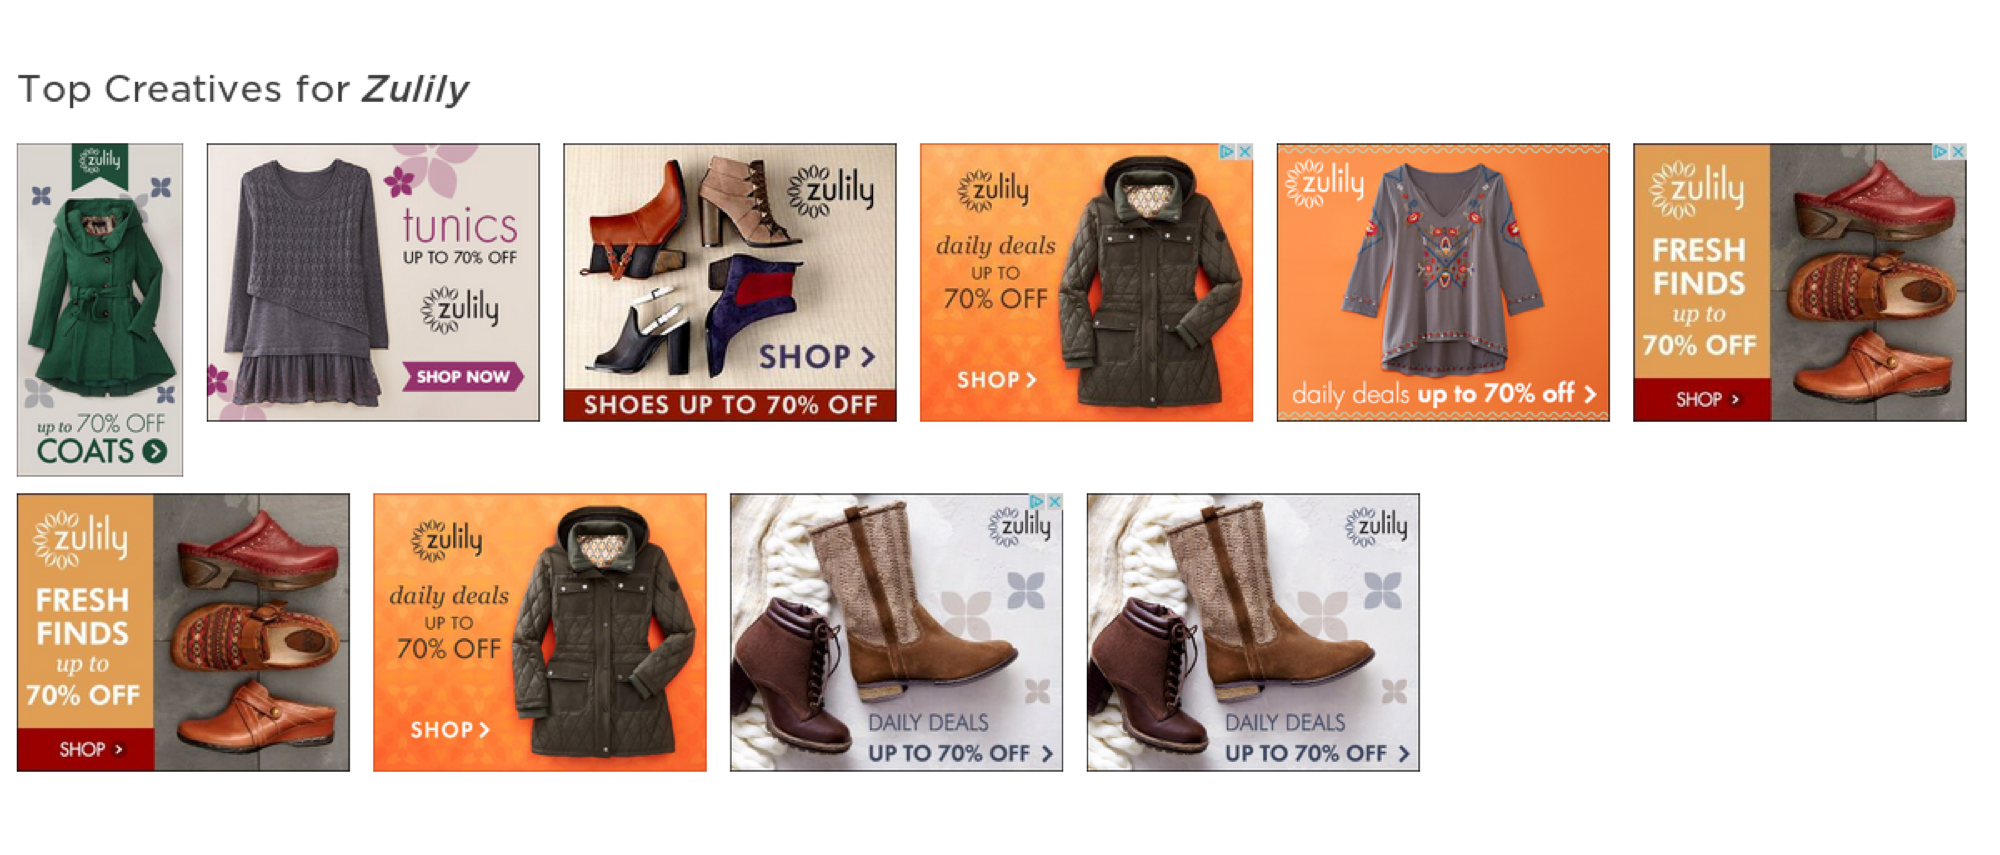 Brand of the Week: Zulily - Featured Image